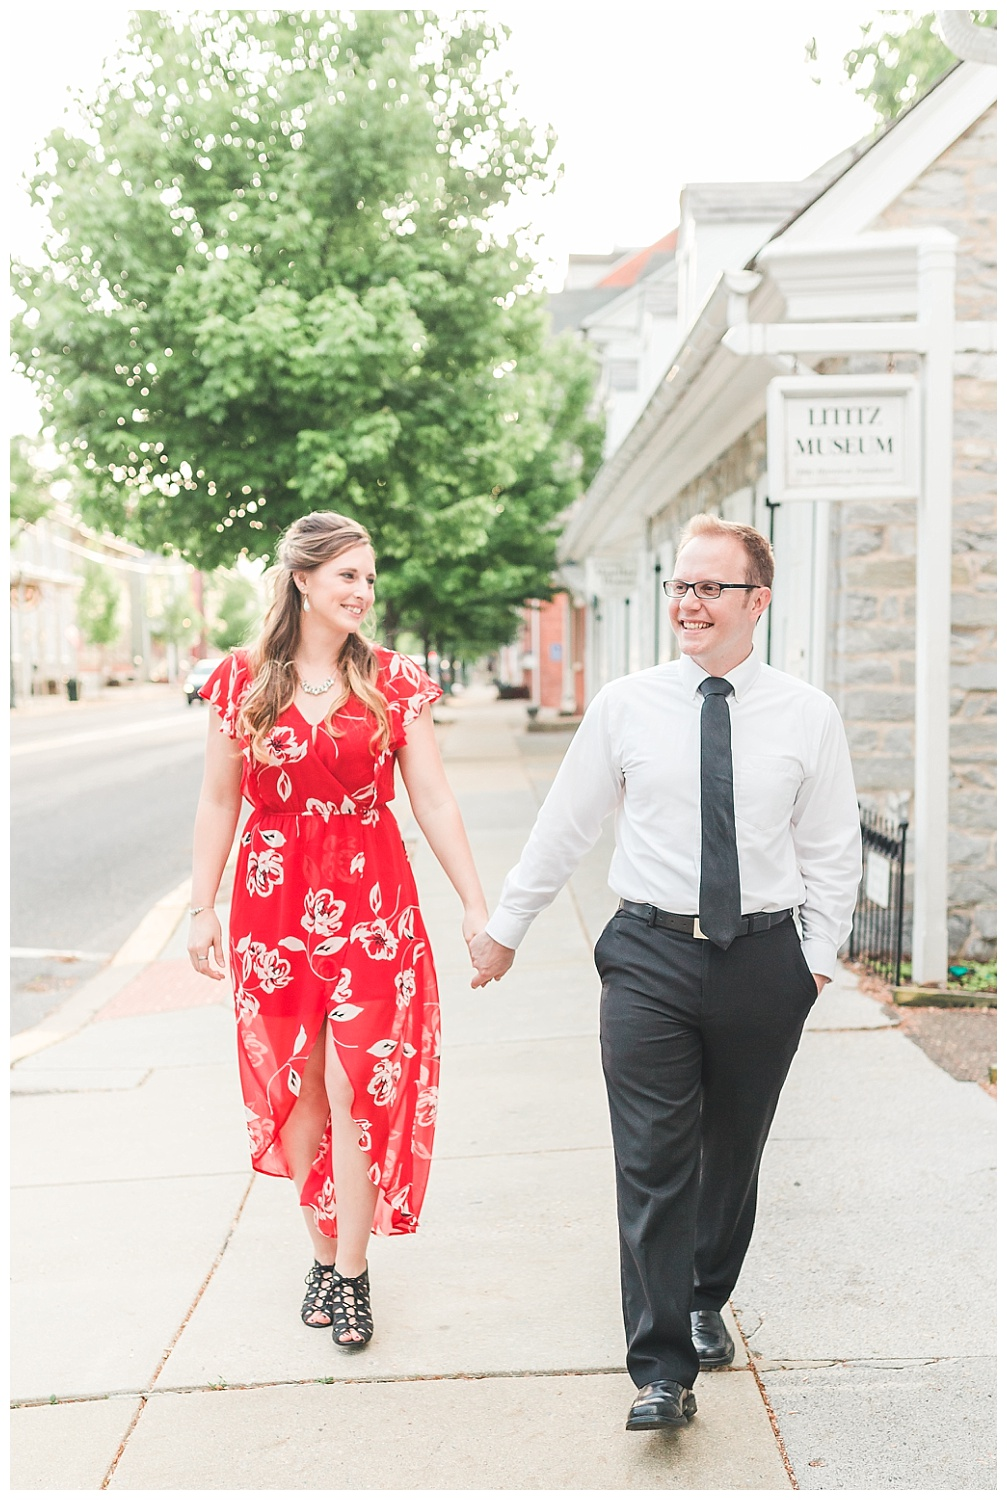 Downtown Lititz PA, spring anniversary session, what to wear